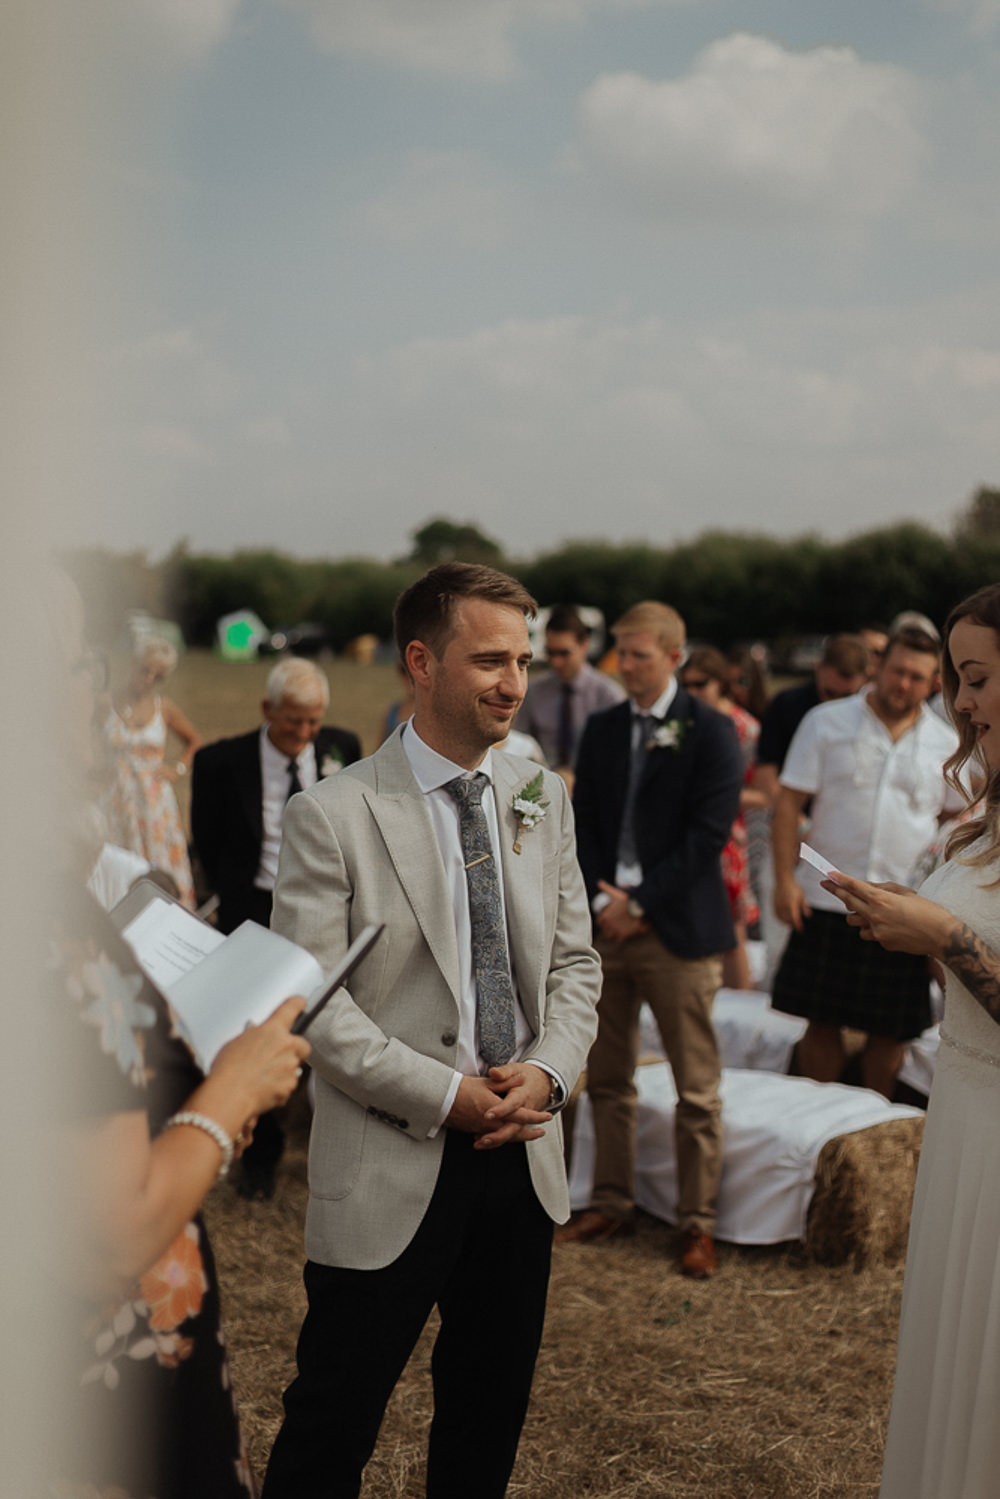 Groom Suit Jacket Trousers Tie Mix Match Riverside Weddings Oxfordshire Yurt Luis Calow Photographer